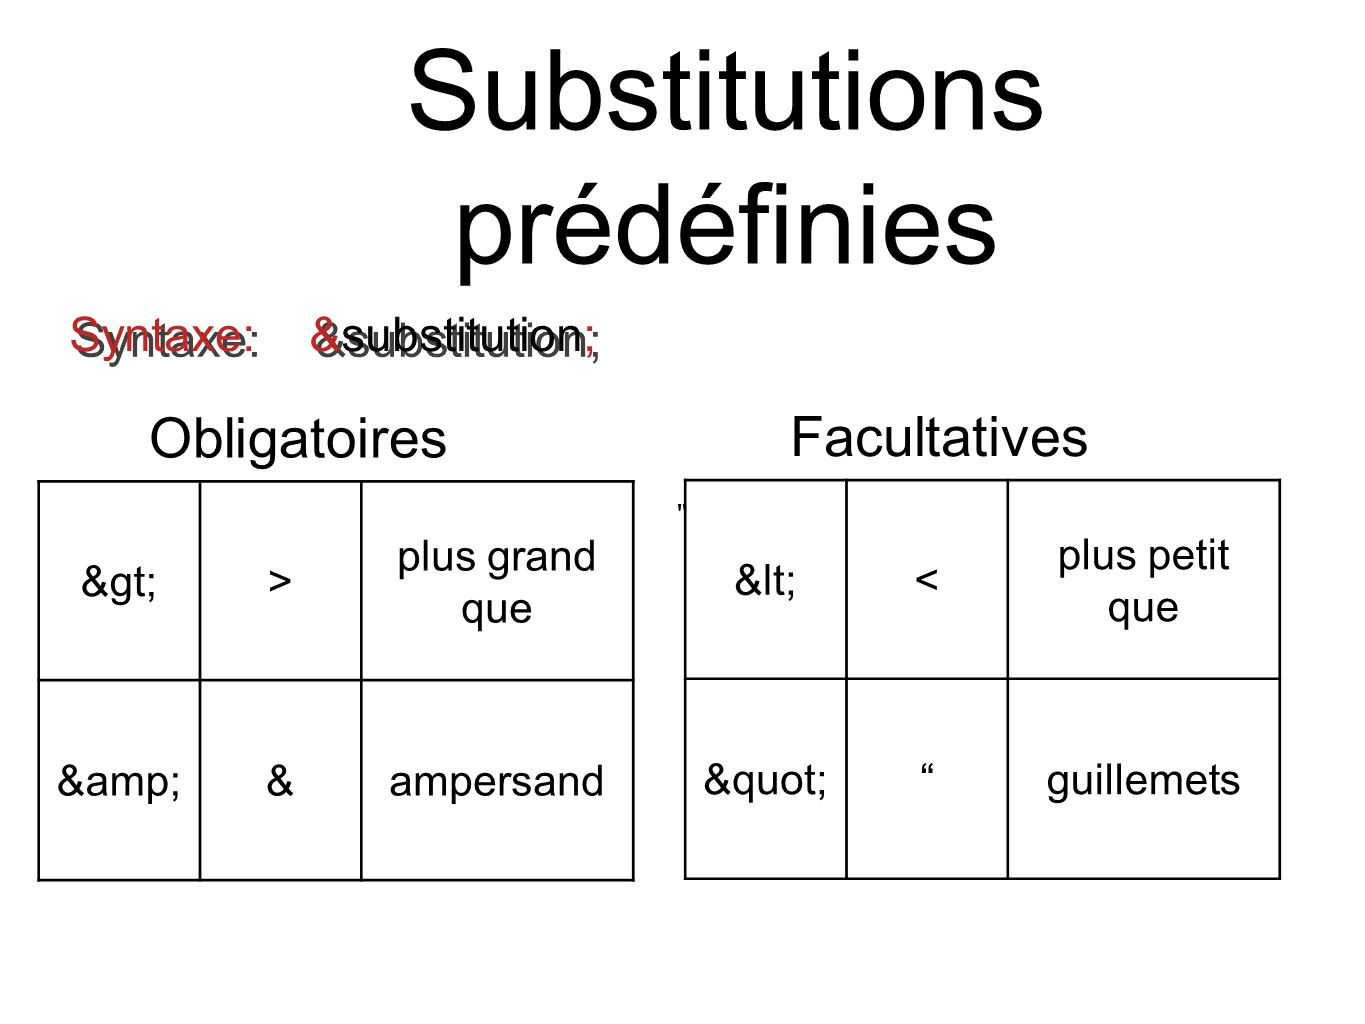 "Substitutions prédéfinies Syntaxe: &substitution; &gt;> plus grand que &amp;&ampersand Obligatoires Facultatives &lt;< plus petit que &quot;""guillemet"